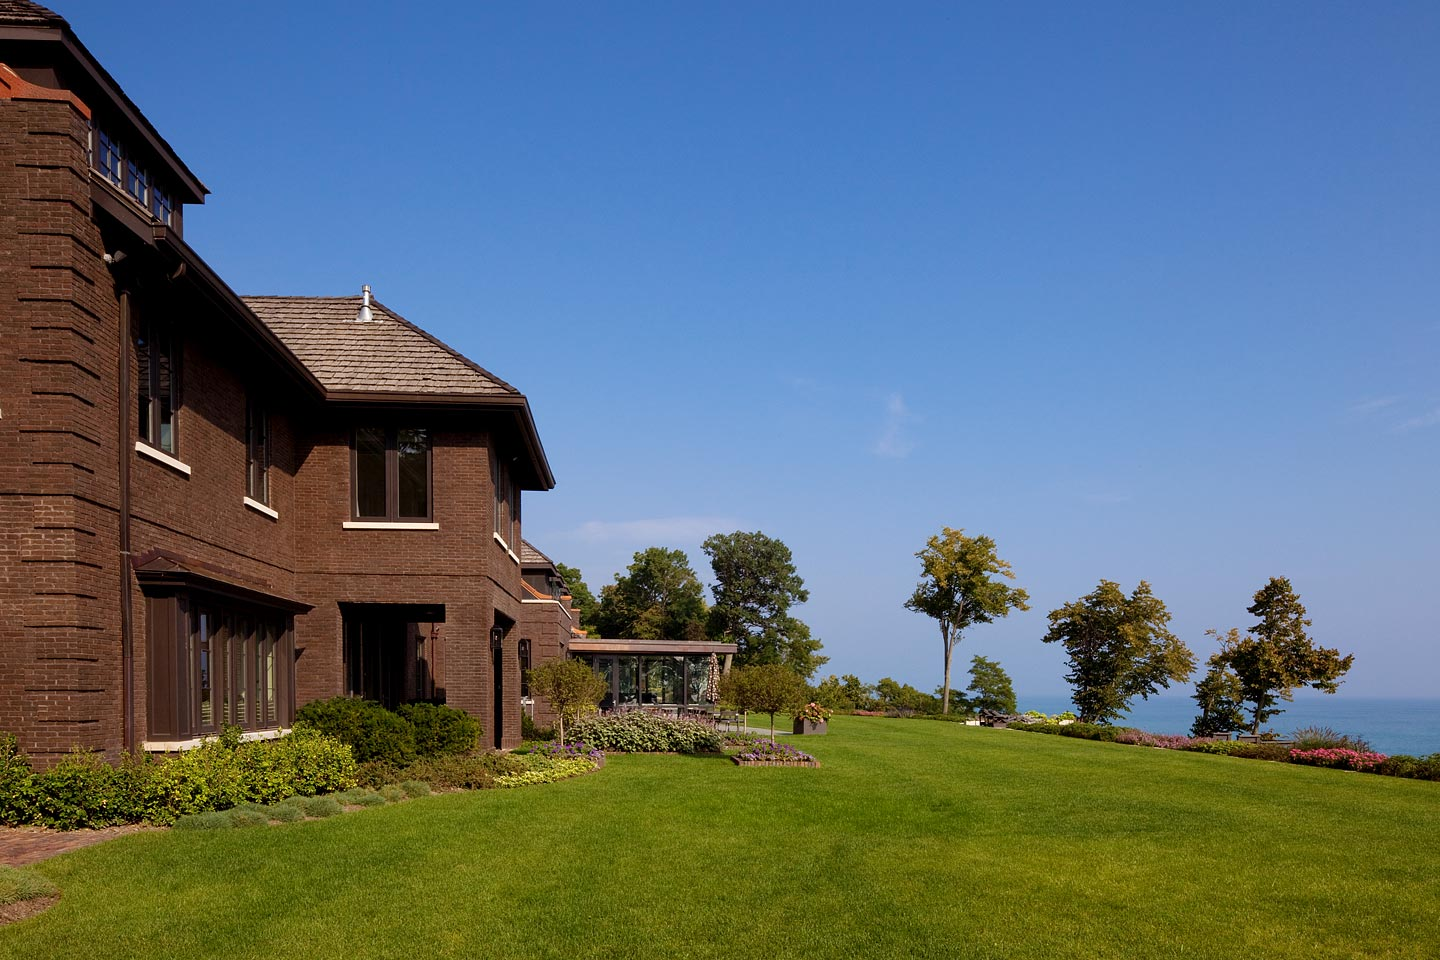 a rear exterior view revealing the juxtaposition of the house to Lake Michigan, photographed by Jacob Rosenfeld